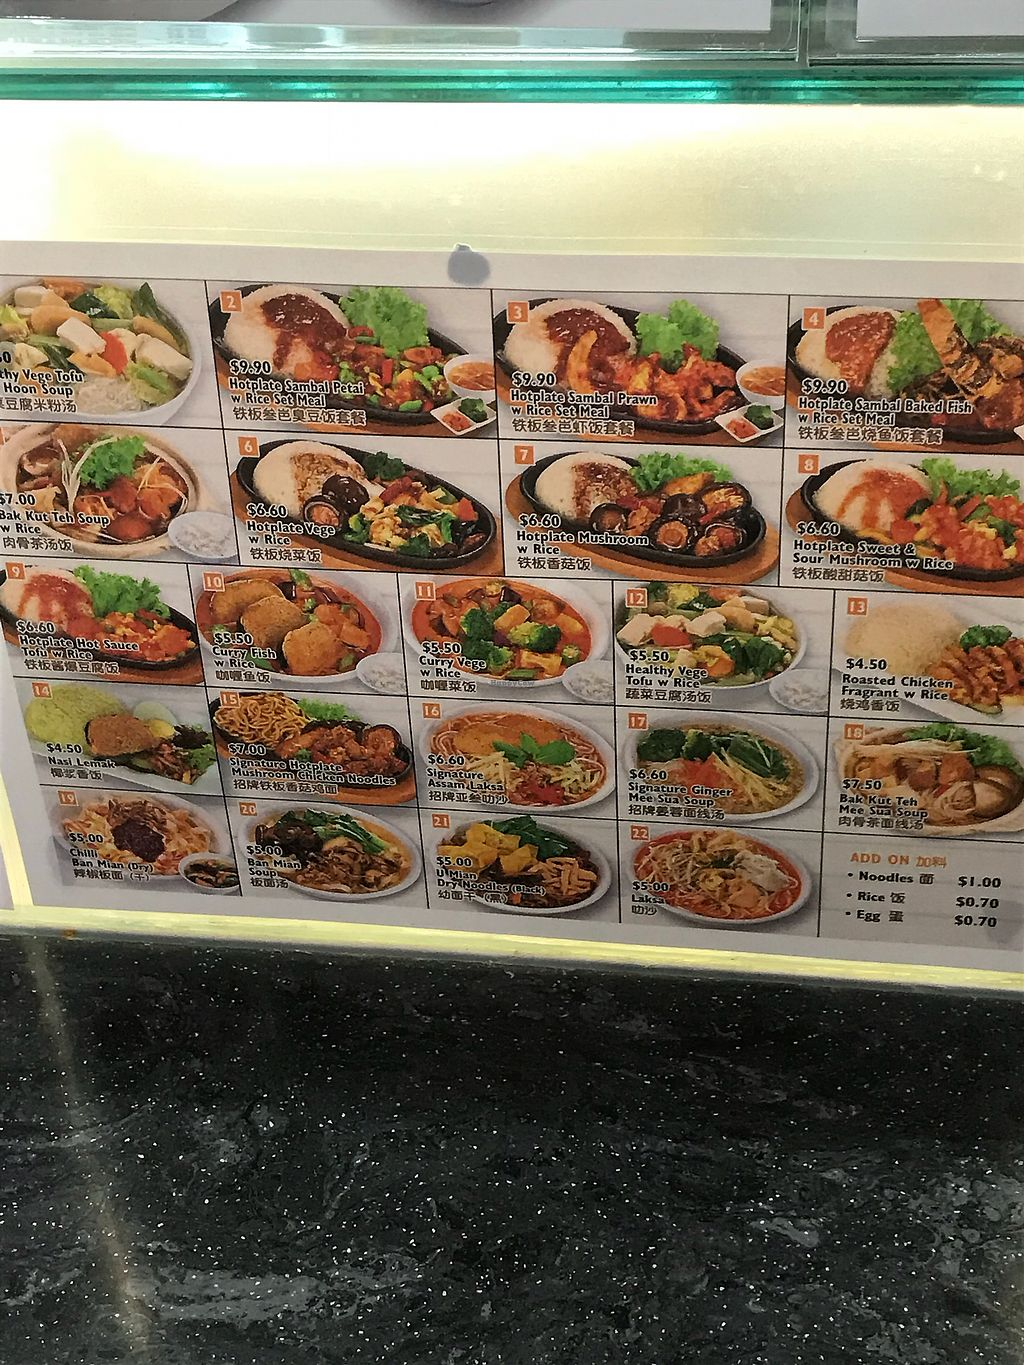 """Photo of T-vege Food Stall  by <a href=""""/members/profile/TofuInvasion"""">TofuInvasion</a> <br/>Menu <br/> April 6, 2018  - <a href='/contact/abuse/image/101052/381560'>Report</a>"""